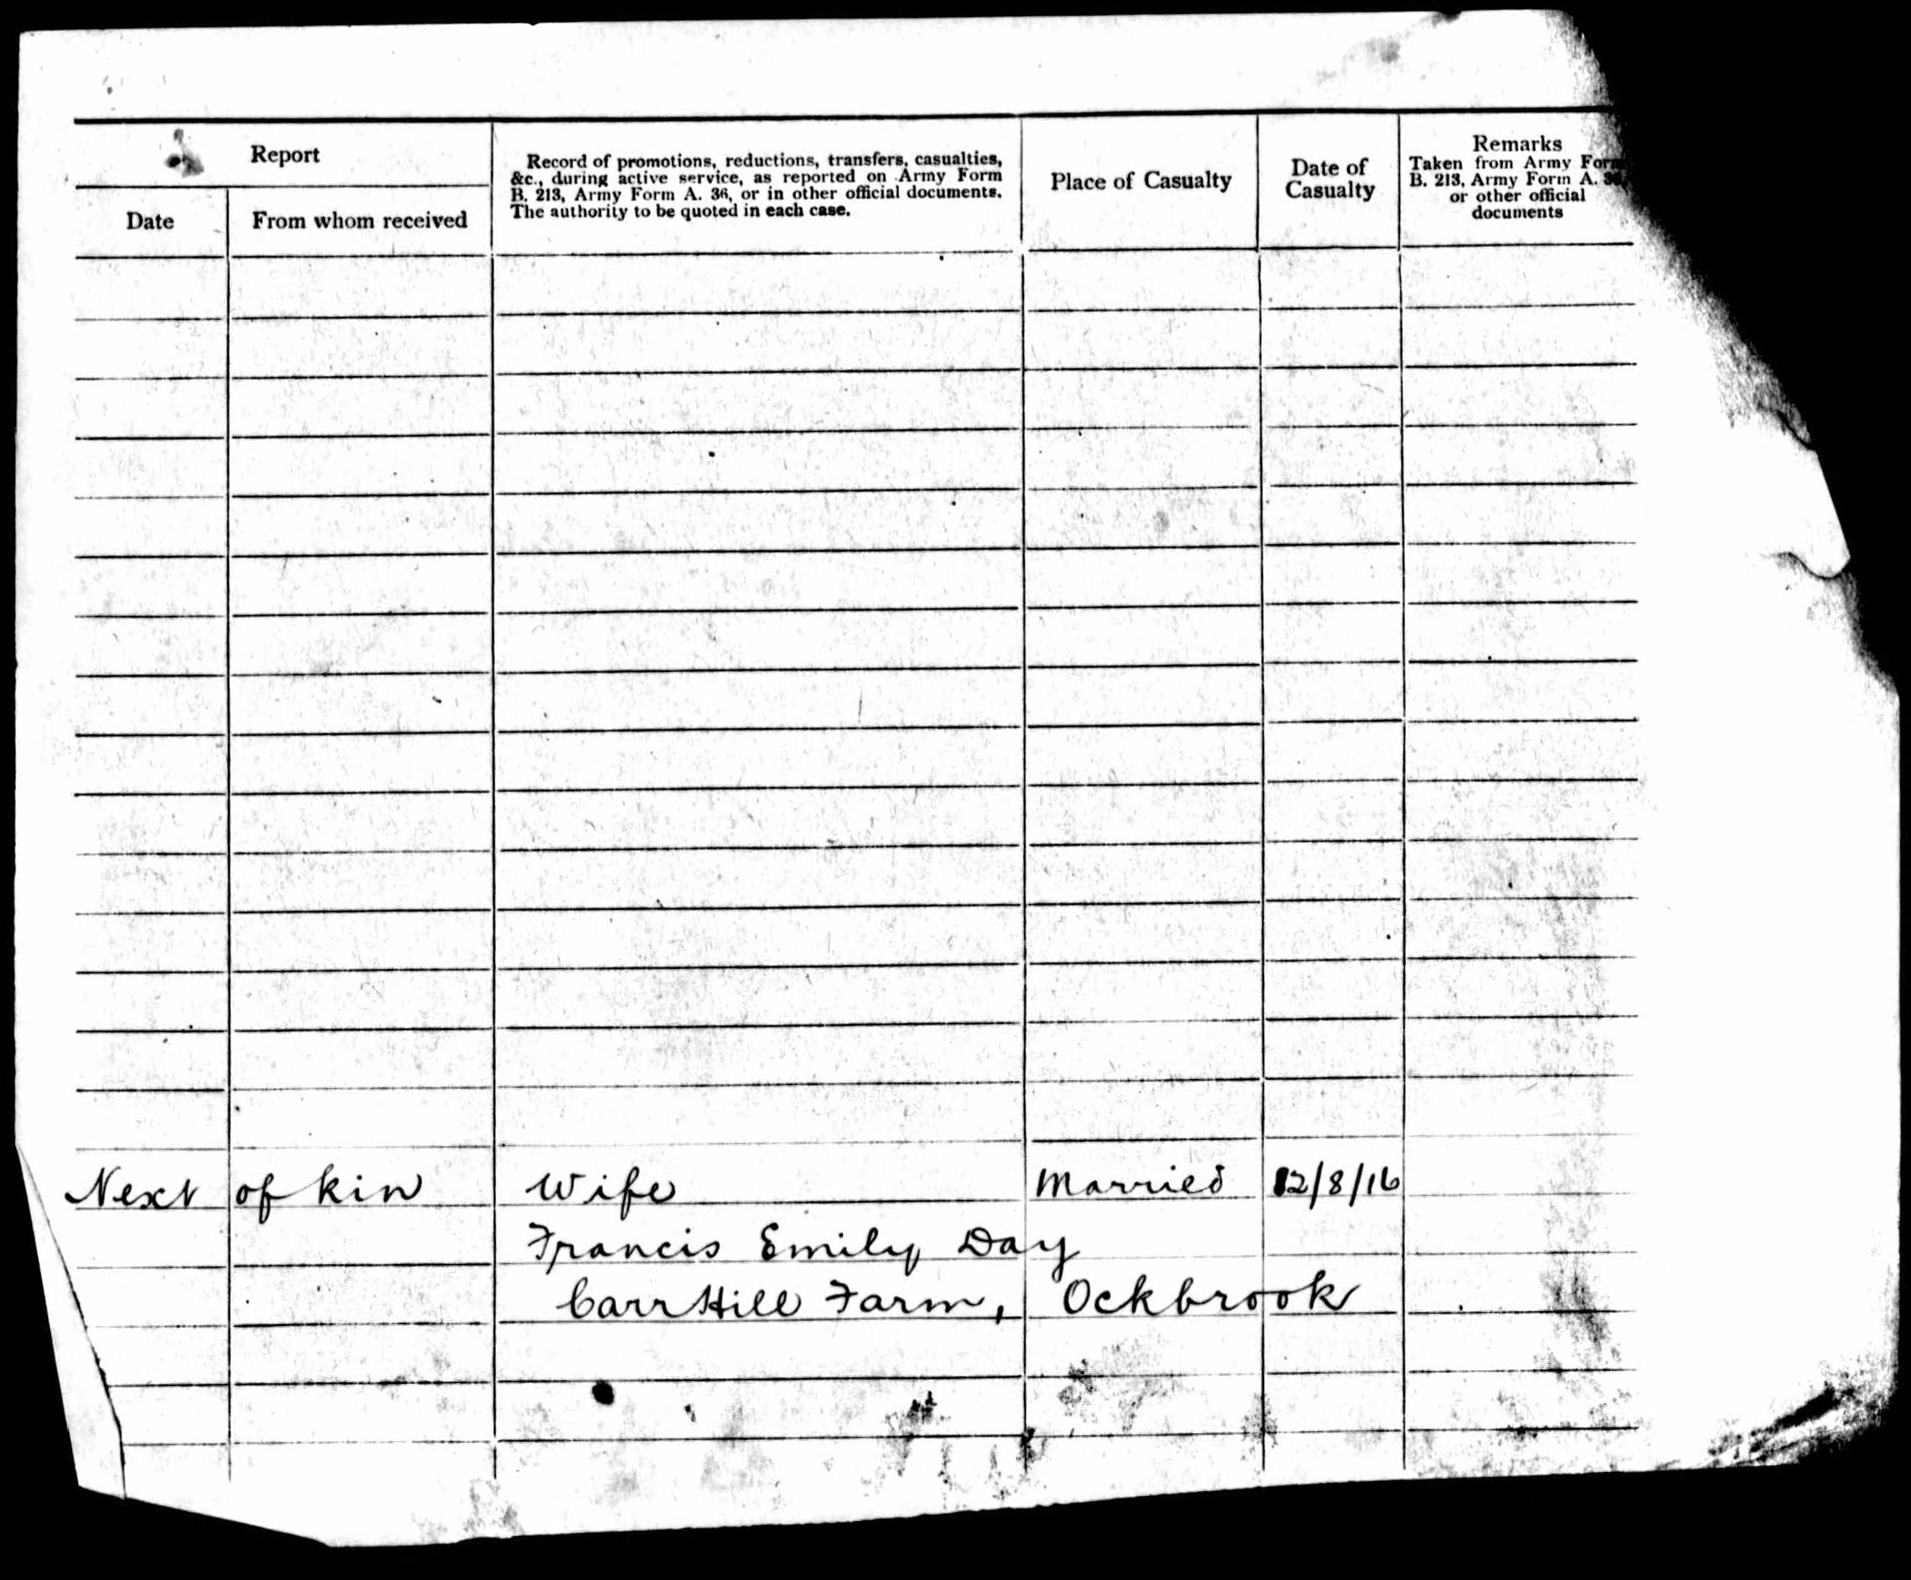 1916-1917 - Day, Walter Sidney - Service Record - MIUK1914H_132377-00483